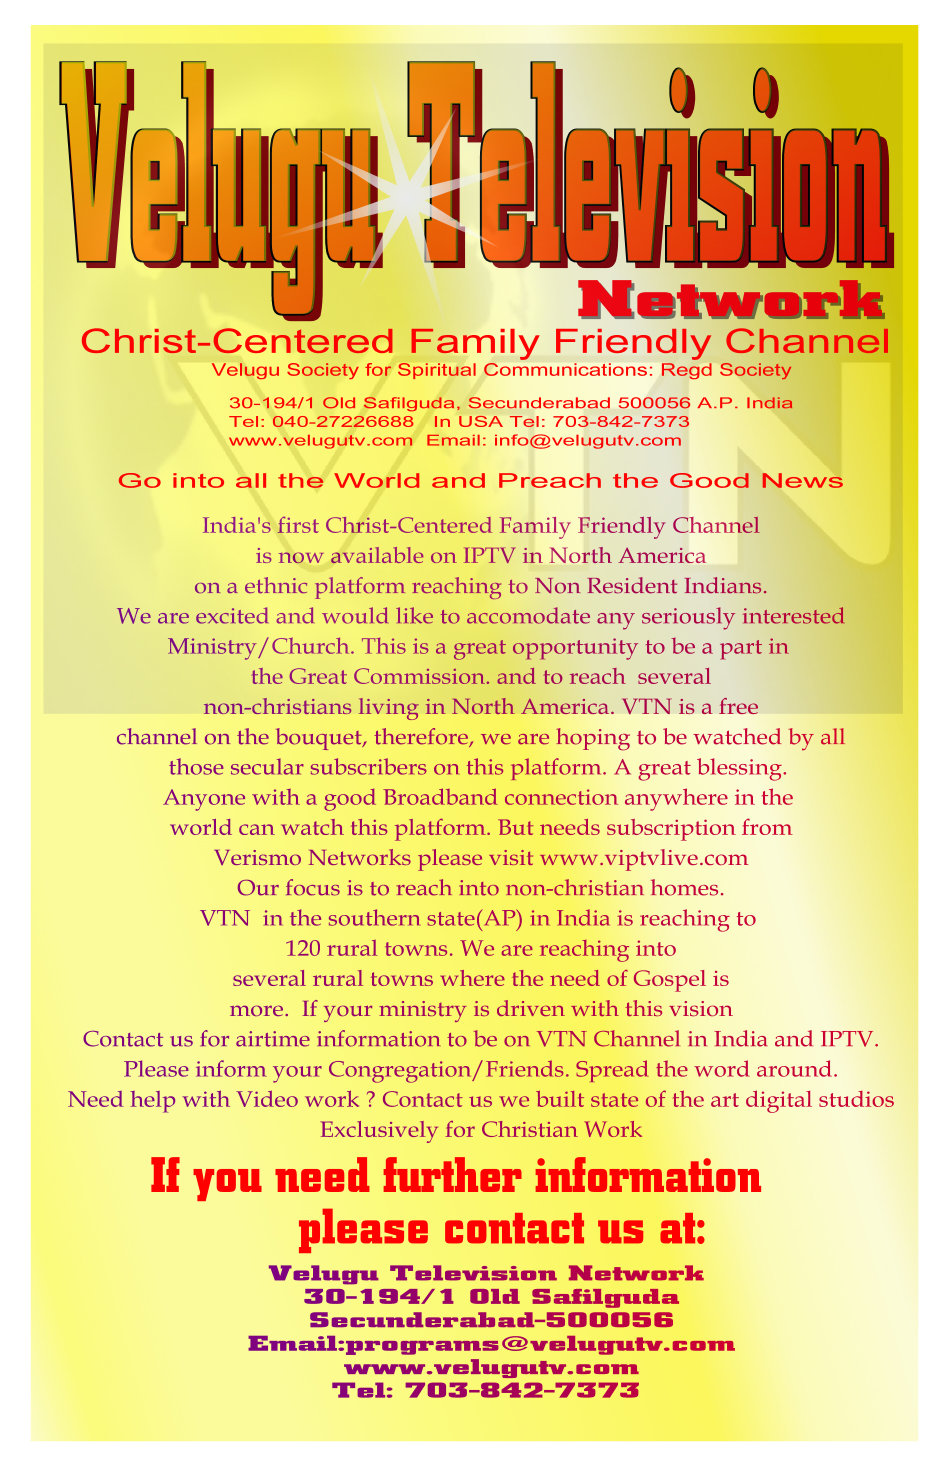 New Jersey Indian Christian Church started by Telugu People